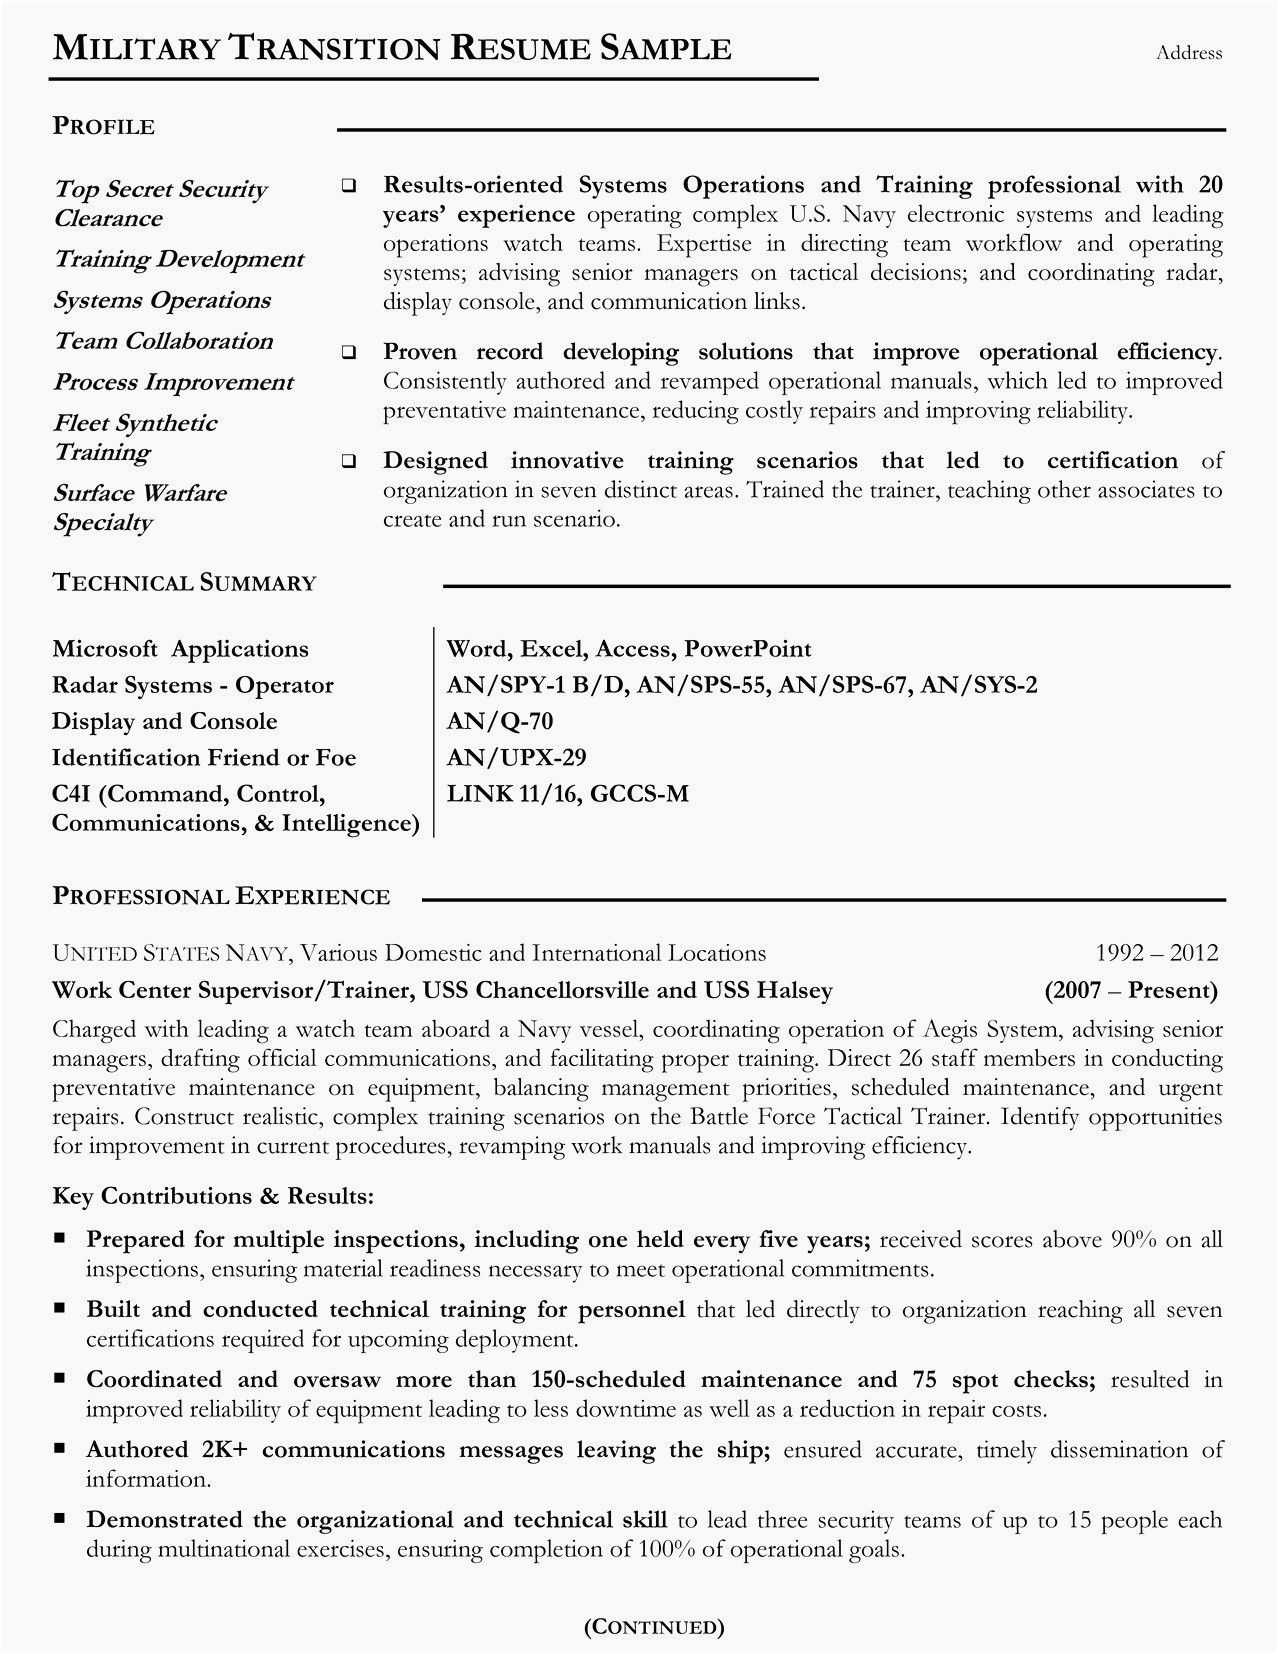 20 Years Experience Resume - 20 Best Ses Resume Professional